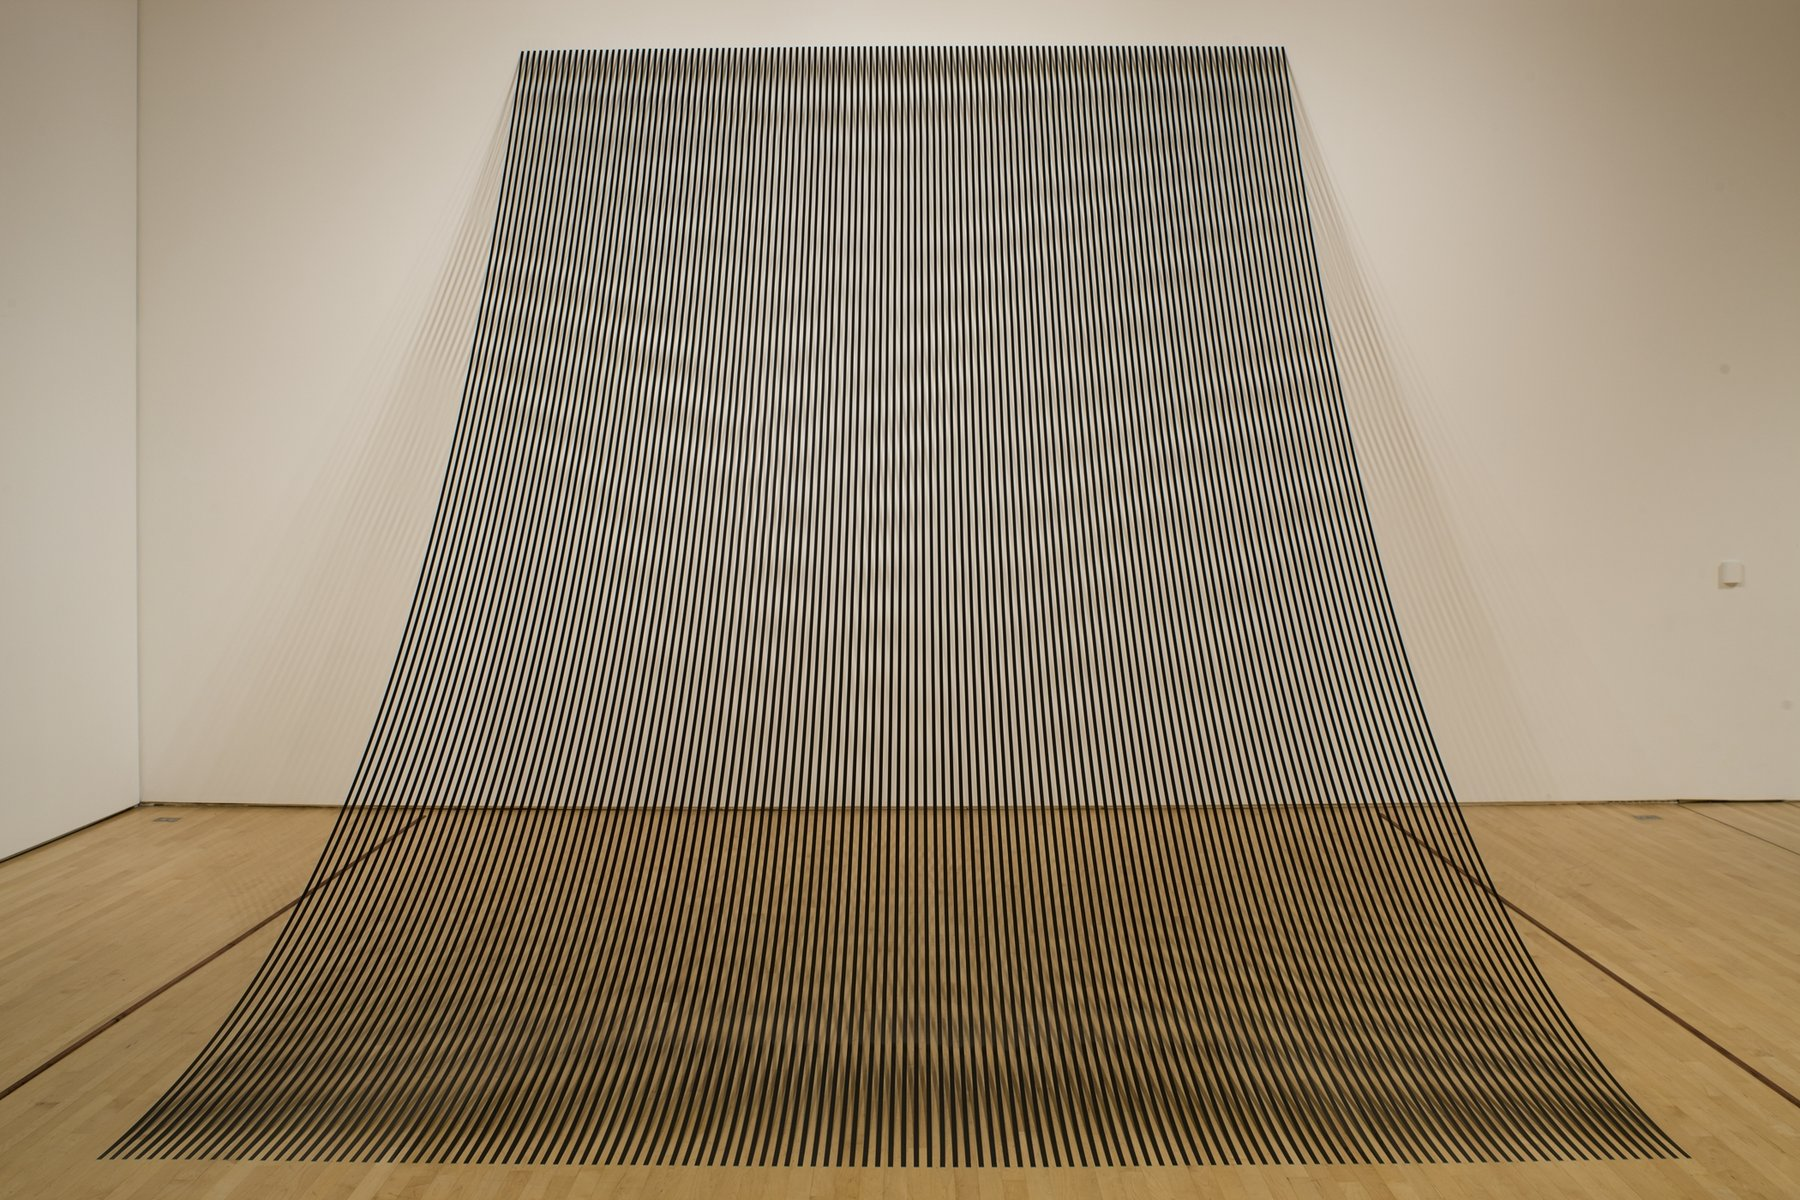 A sculpture made up of black strips that drape from the wall onto the floor